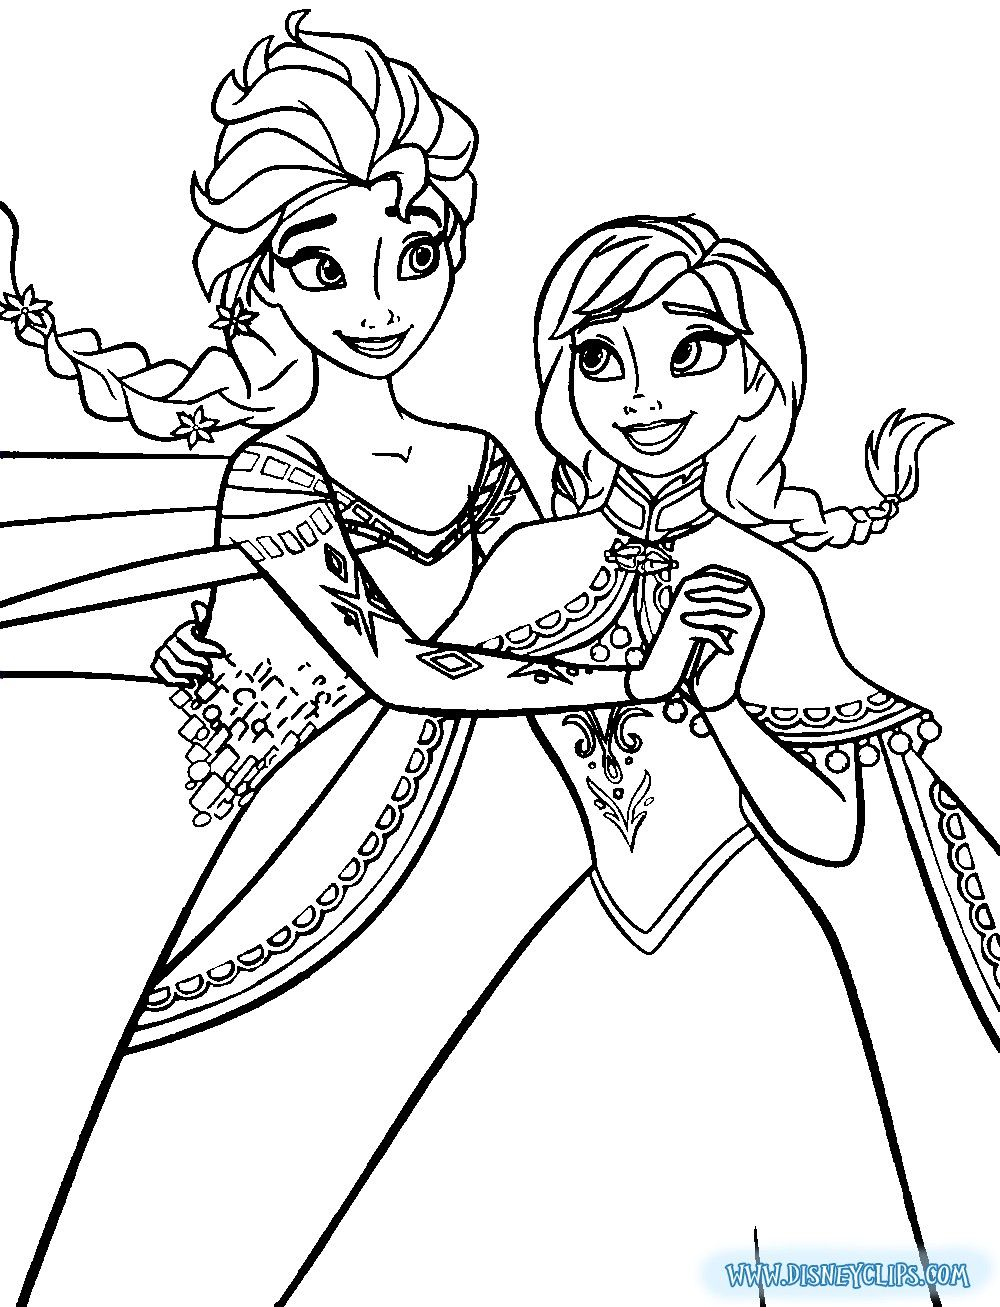 Coloring Pages Princess Elsa – Through the thousand photos online